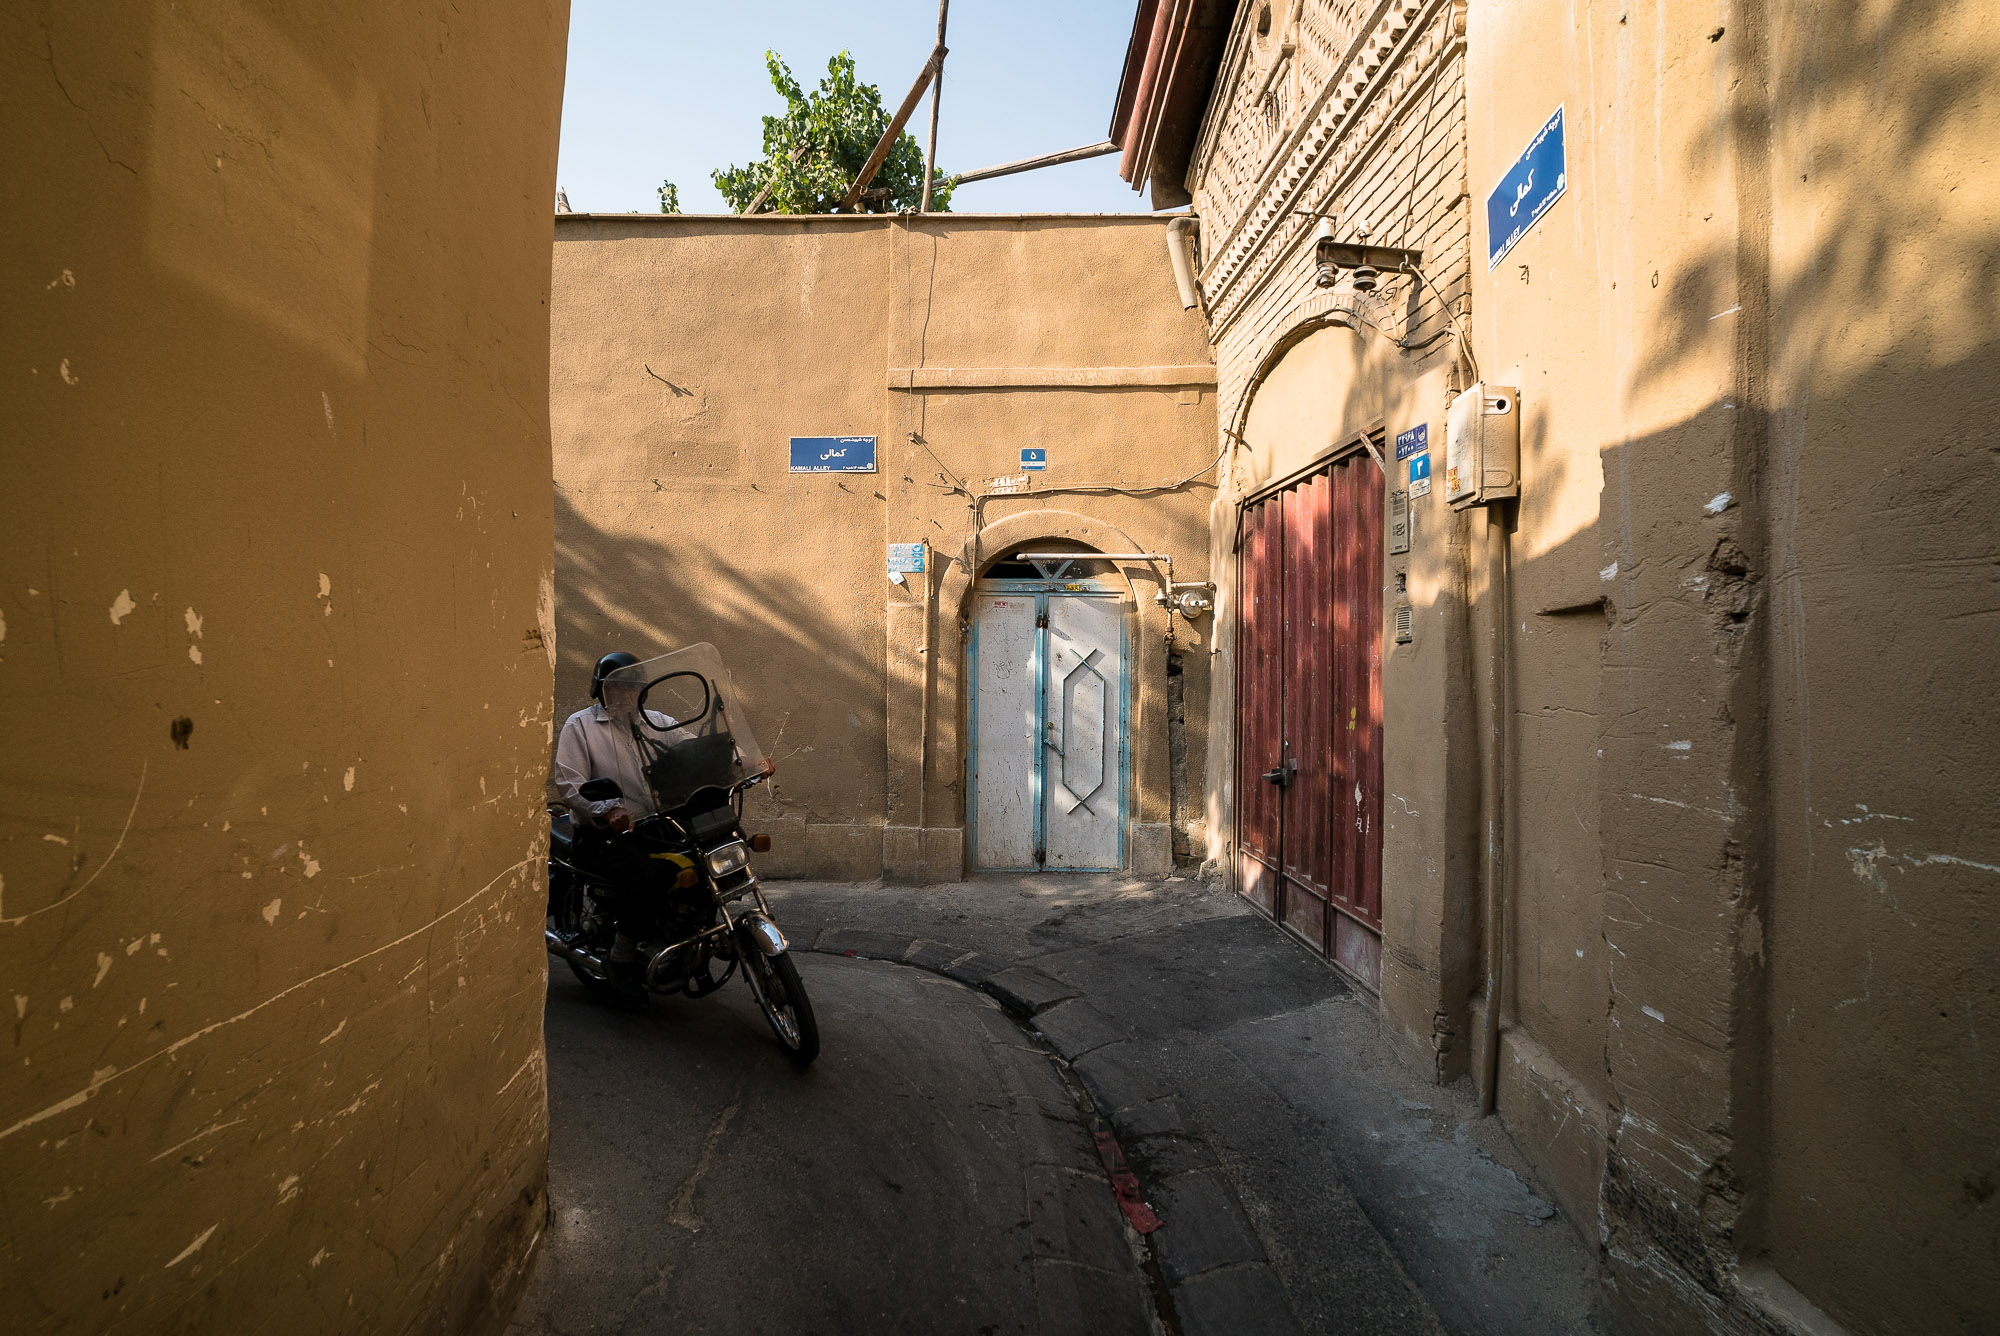 alley frequented by motorcyclists in old Tehran